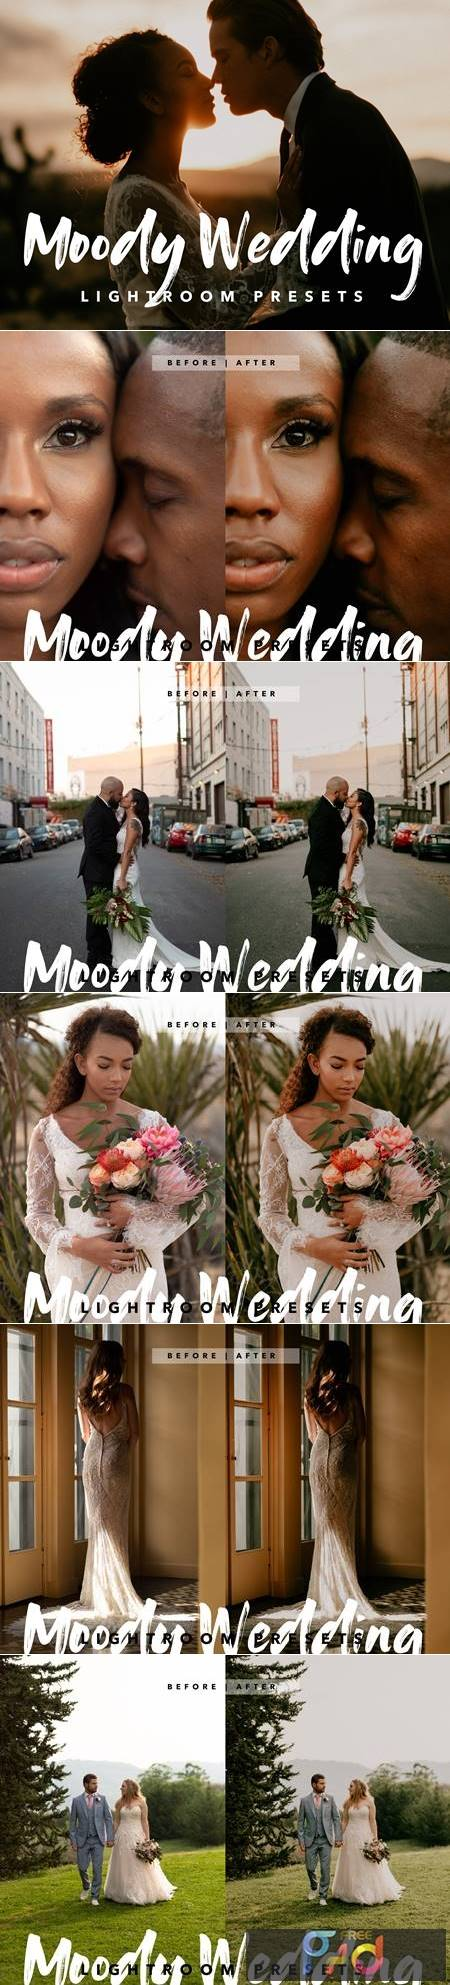 Moody Wedding 01 - Lightroom Presets 4633893 1